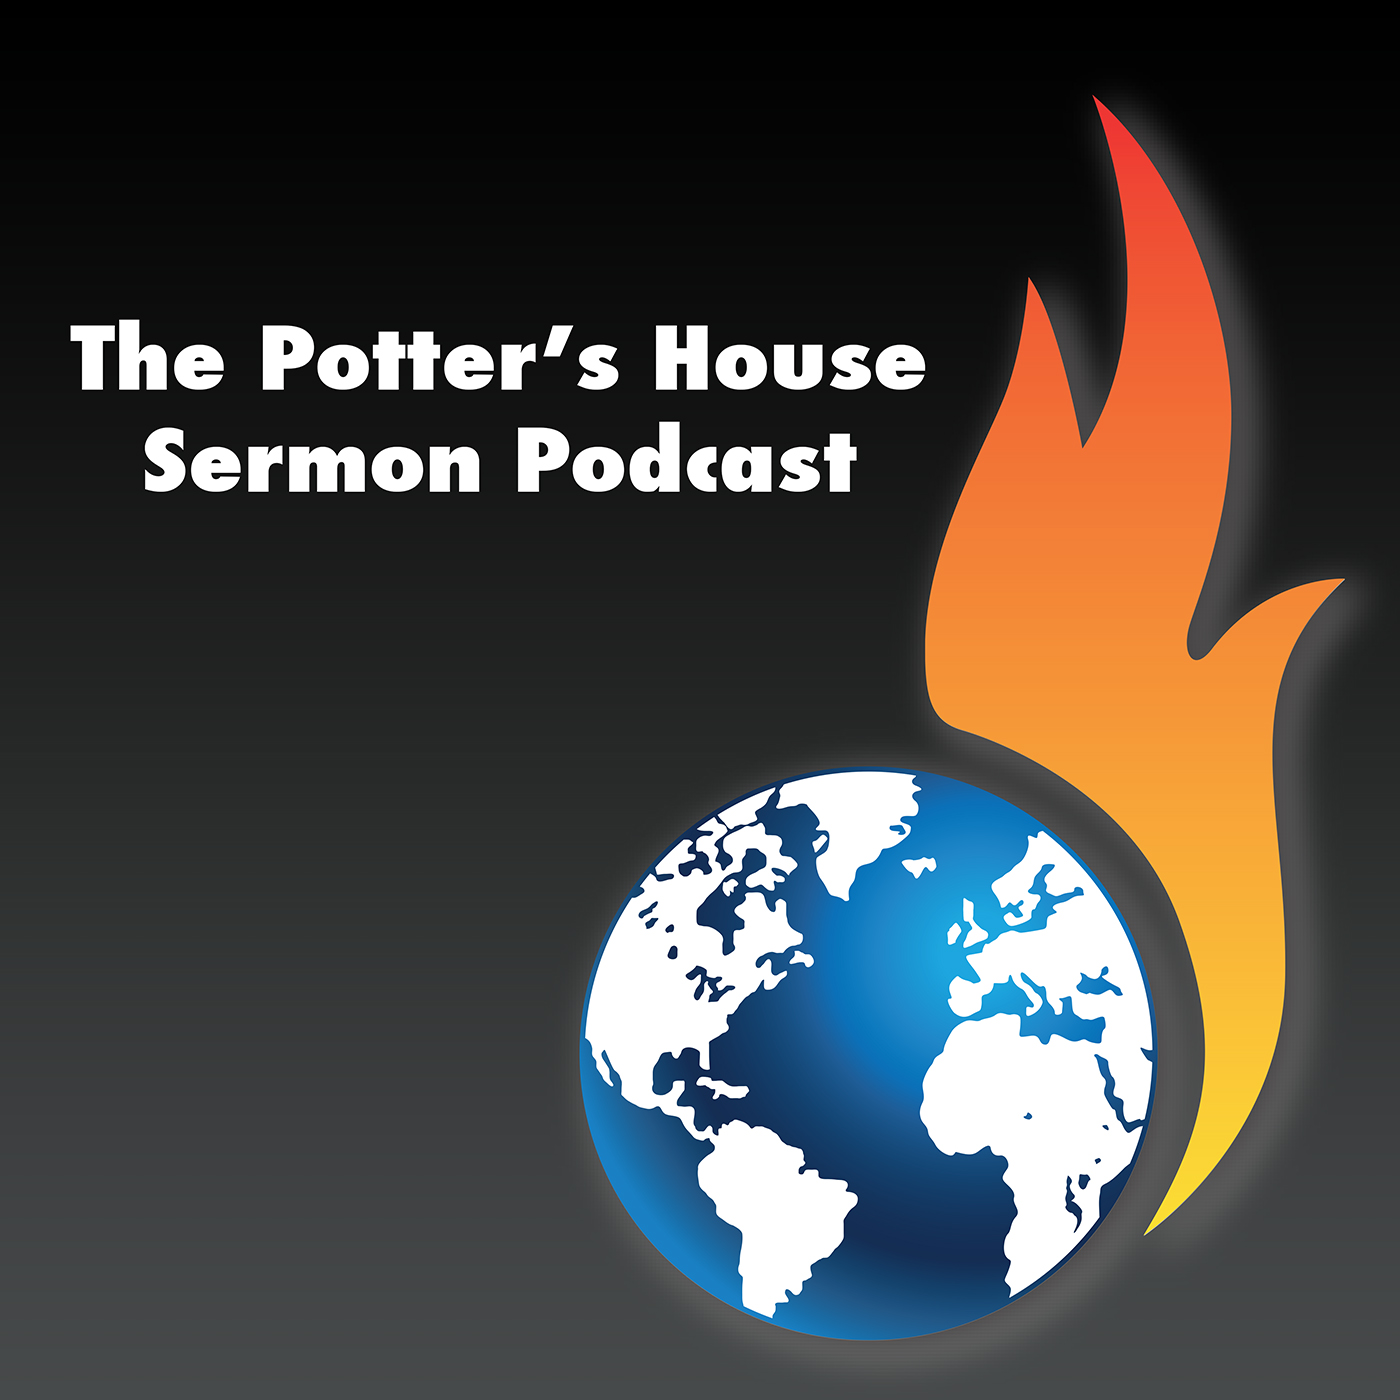 Sermons - The Potter's House